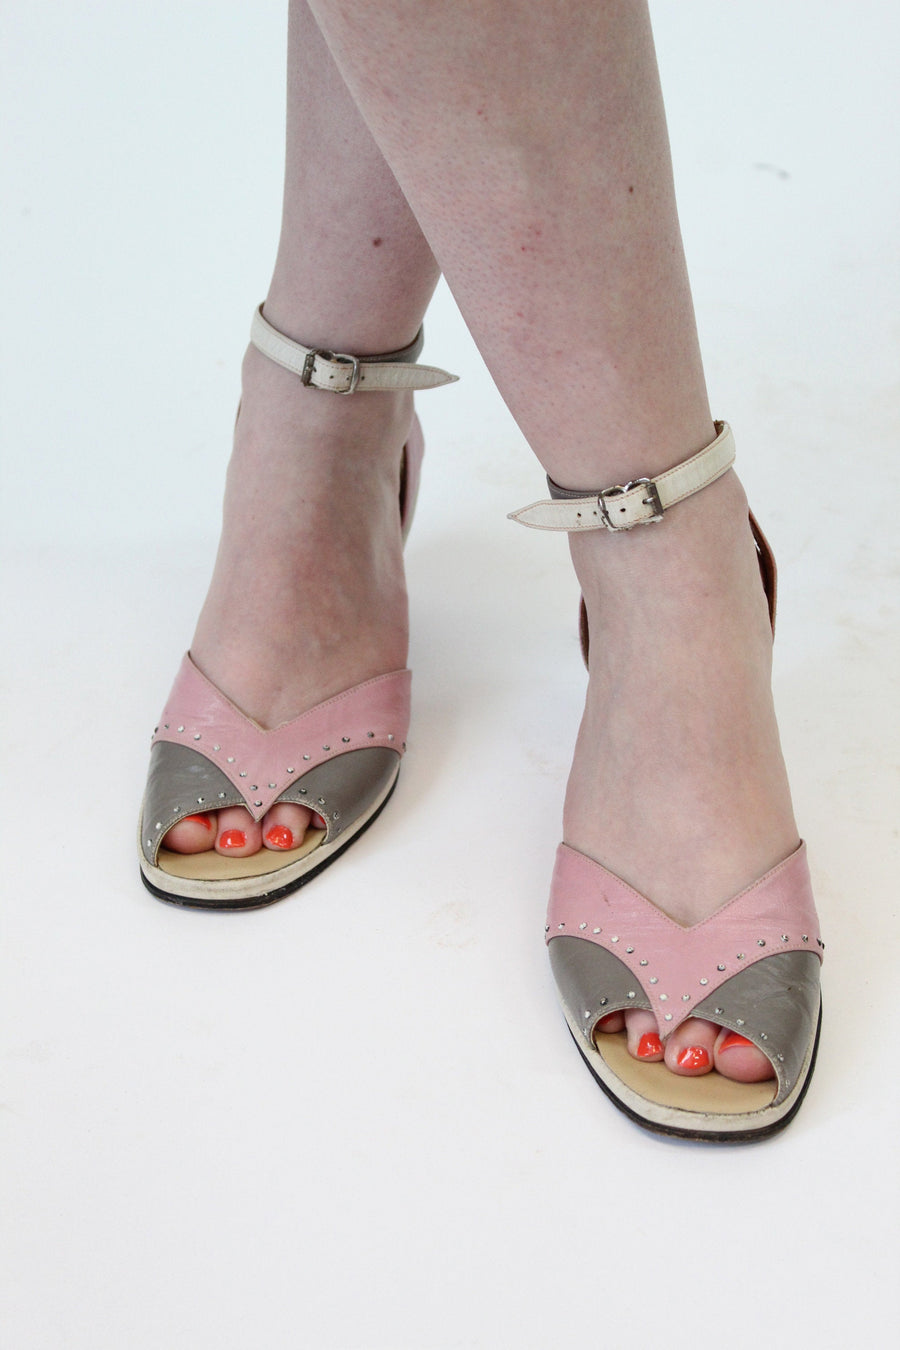 1940s studded ankle strap sandals size 8.5 us | vintage wedges | new in